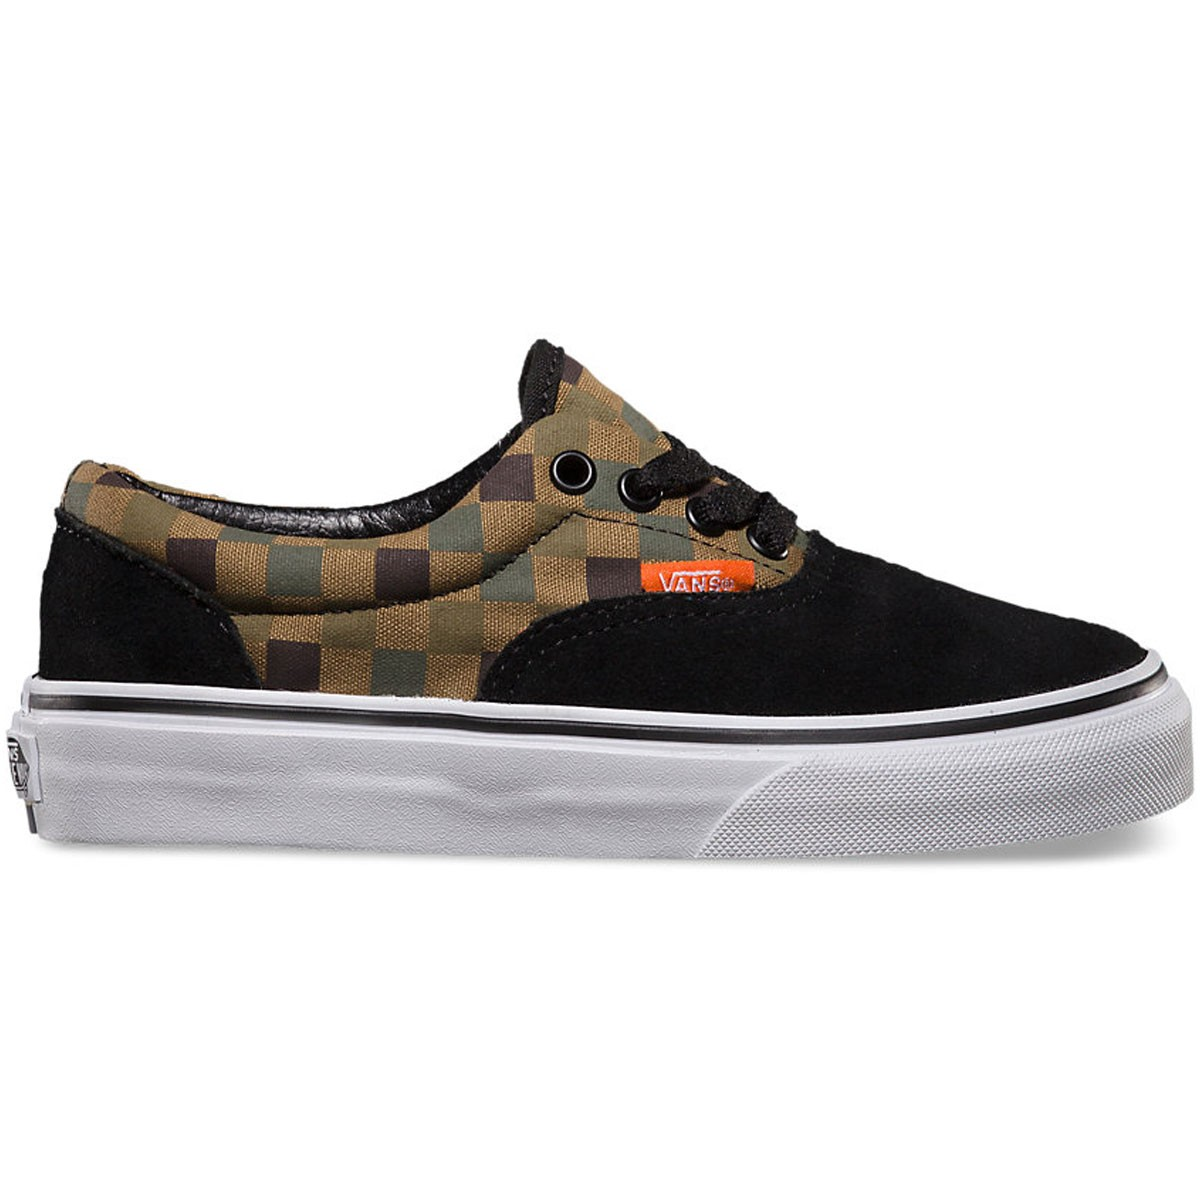 Vans Checkerboard Era Youth Shoes - Black Military Olive - 4.0 dfcbd8c9f